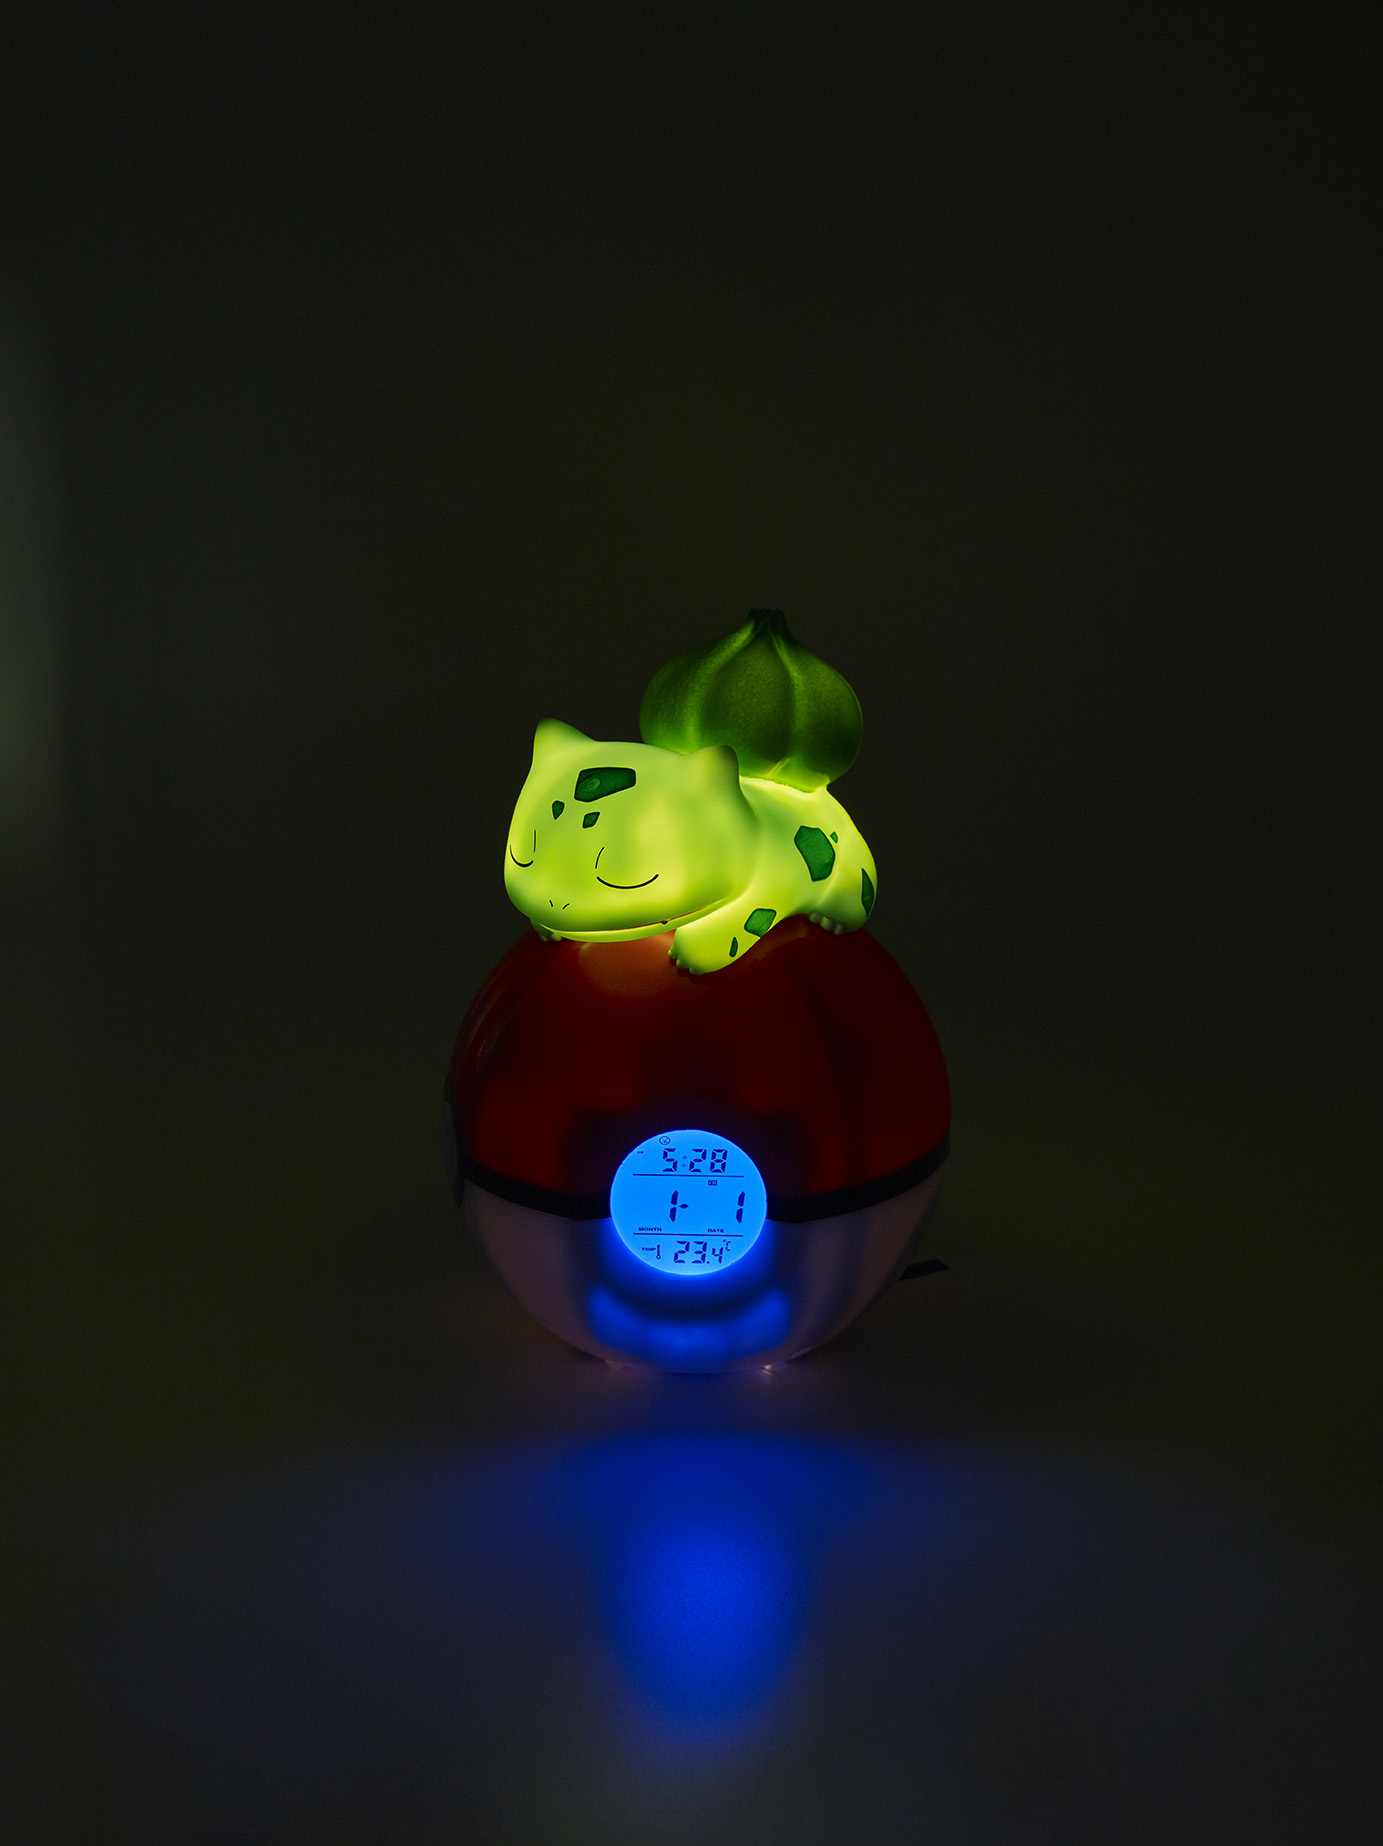 Pokémon Bulbasaur Night light and Alarm Clock 4